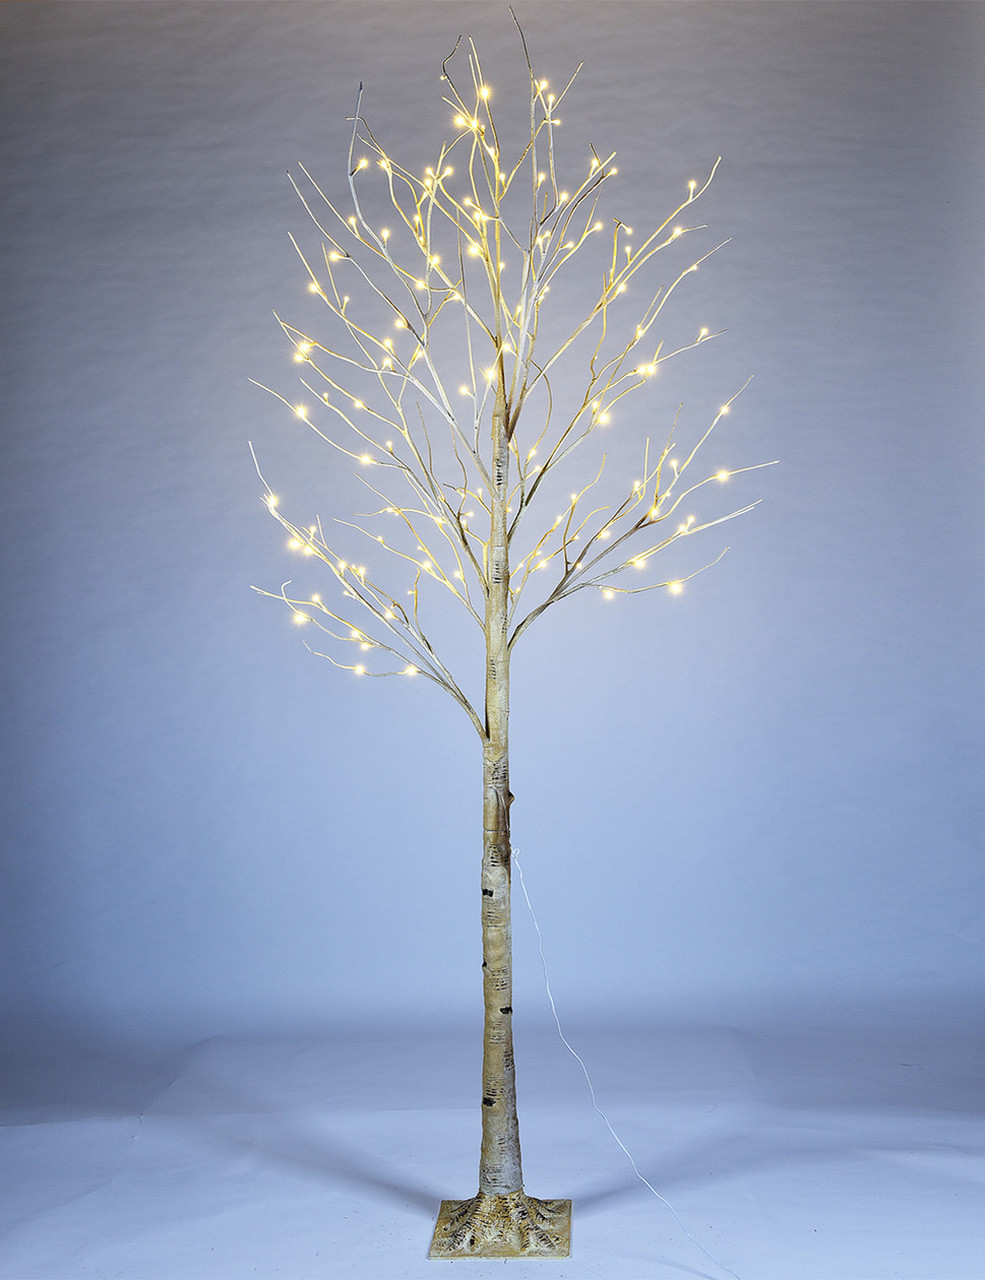 Christmas Tree White Lights.Lightshare 8 Ft Pre Lit Birch Tree With 132 Warm White Lights